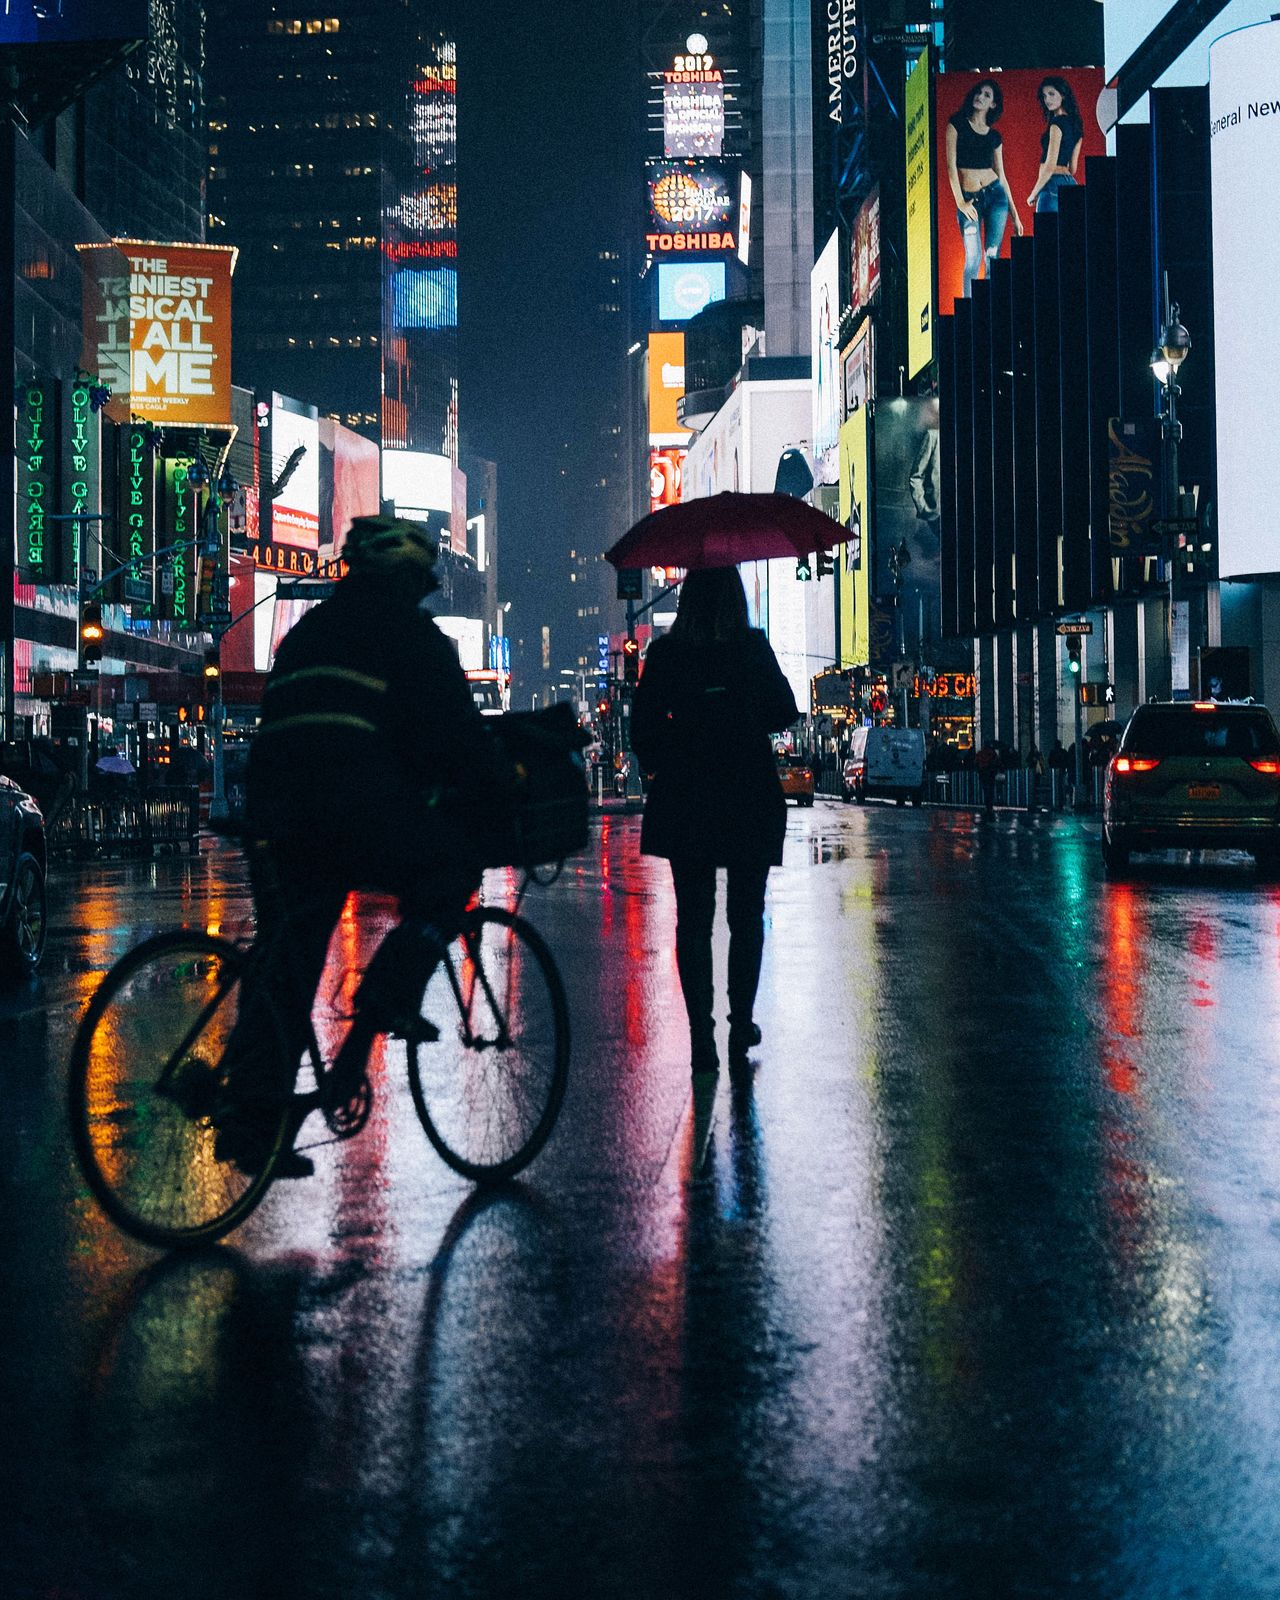 Adapted To The City of New York Bicycle Two People Rain Street Cycling Transportation Wet City Land Vehicle Outdoors Adults Only Rainy Season Night Full Length People Men Adult